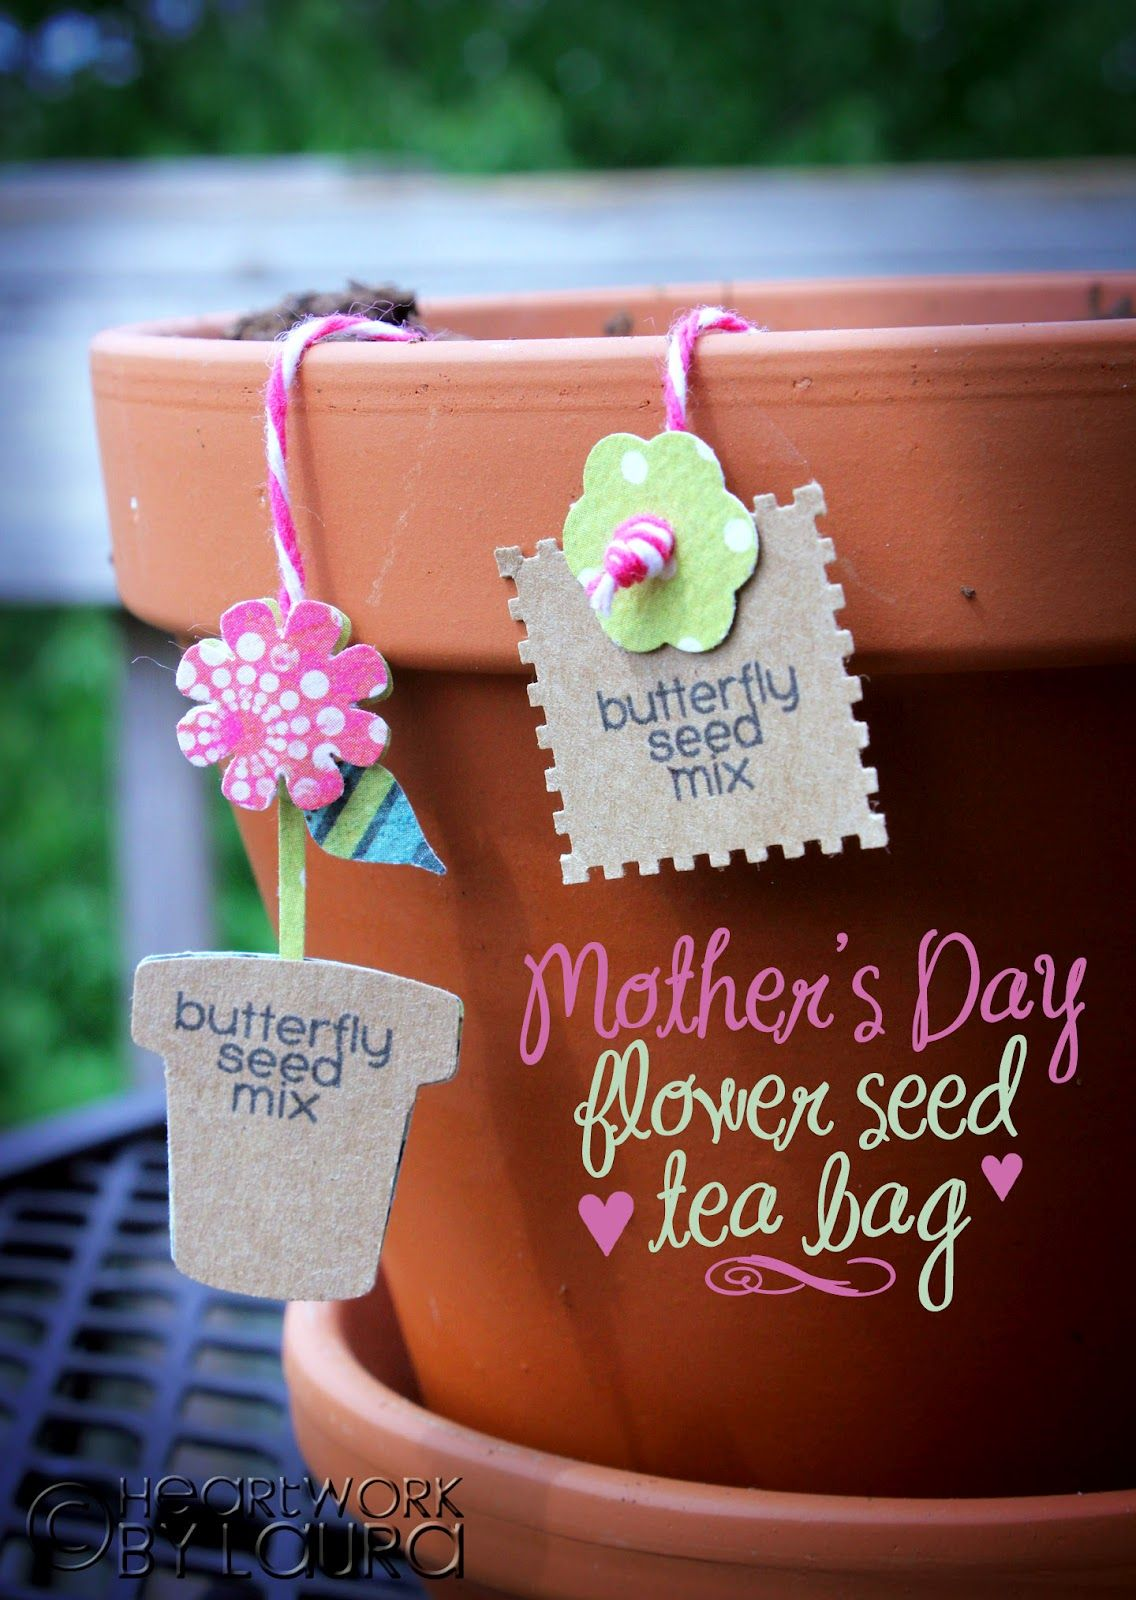 Mother's Day Flower Seed Tea Bag Mothers day flowers